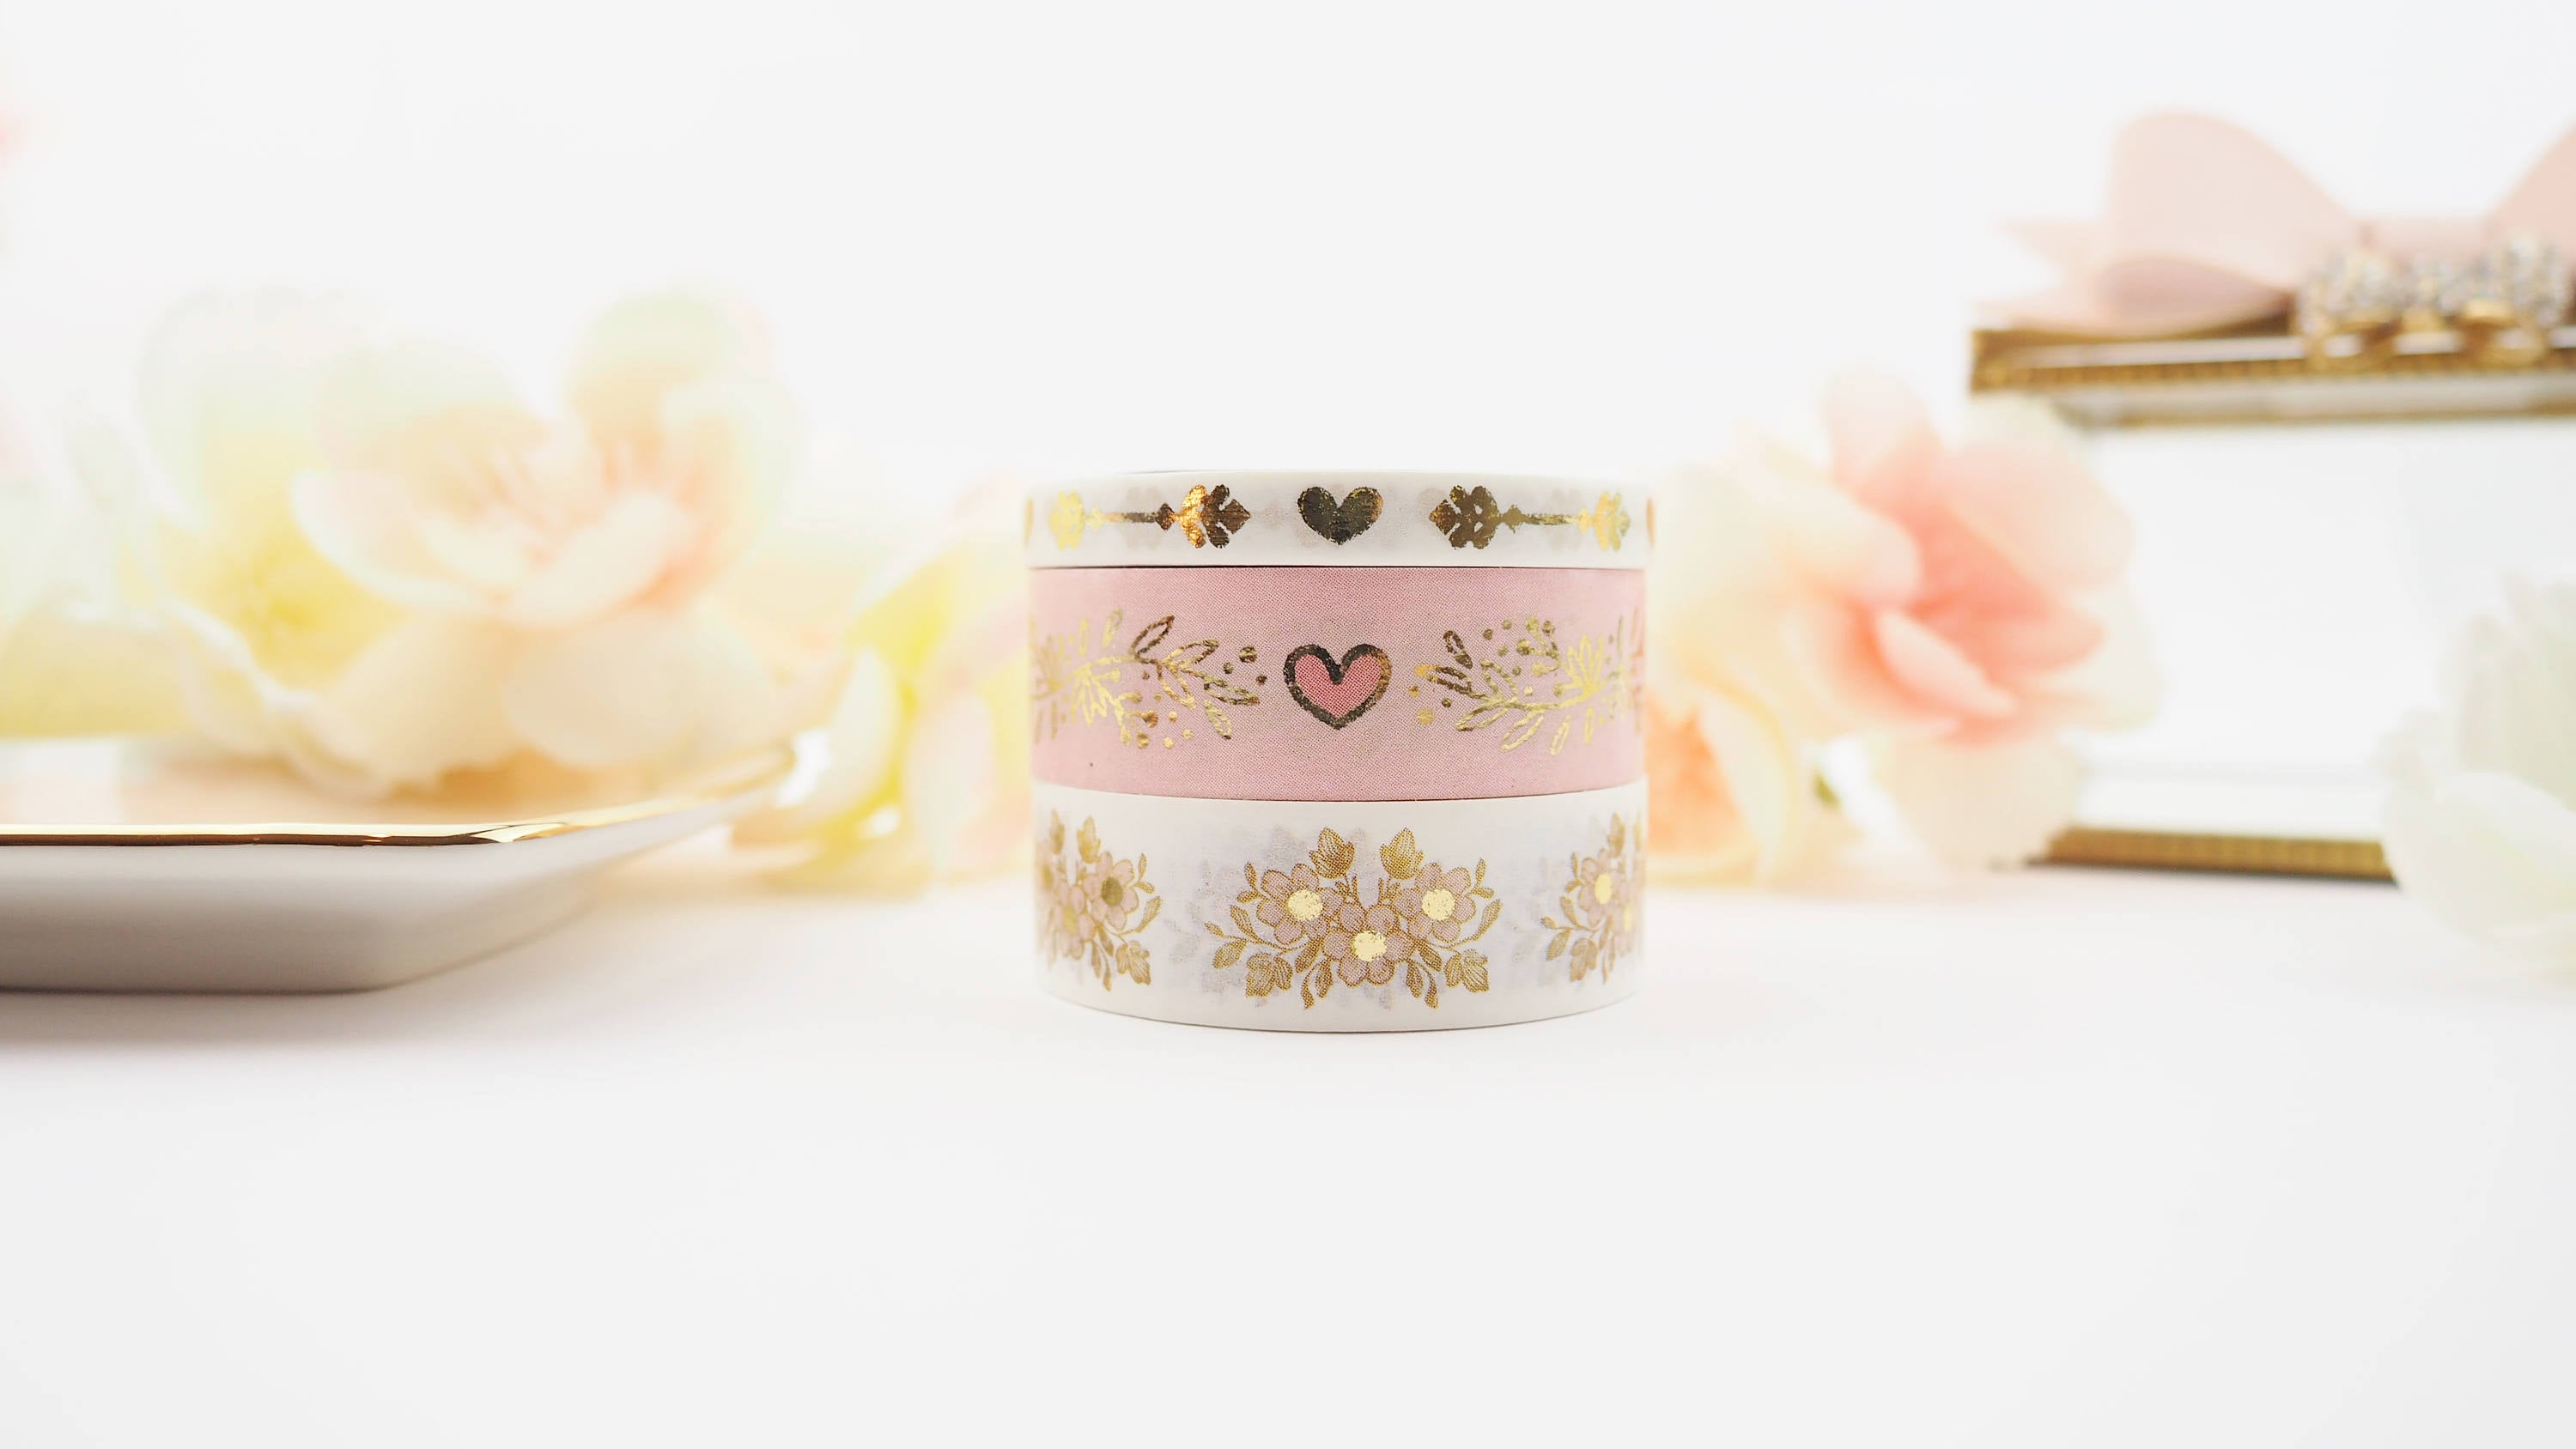 Everlasting Washi Tape Collection - The Pink Room Co Original